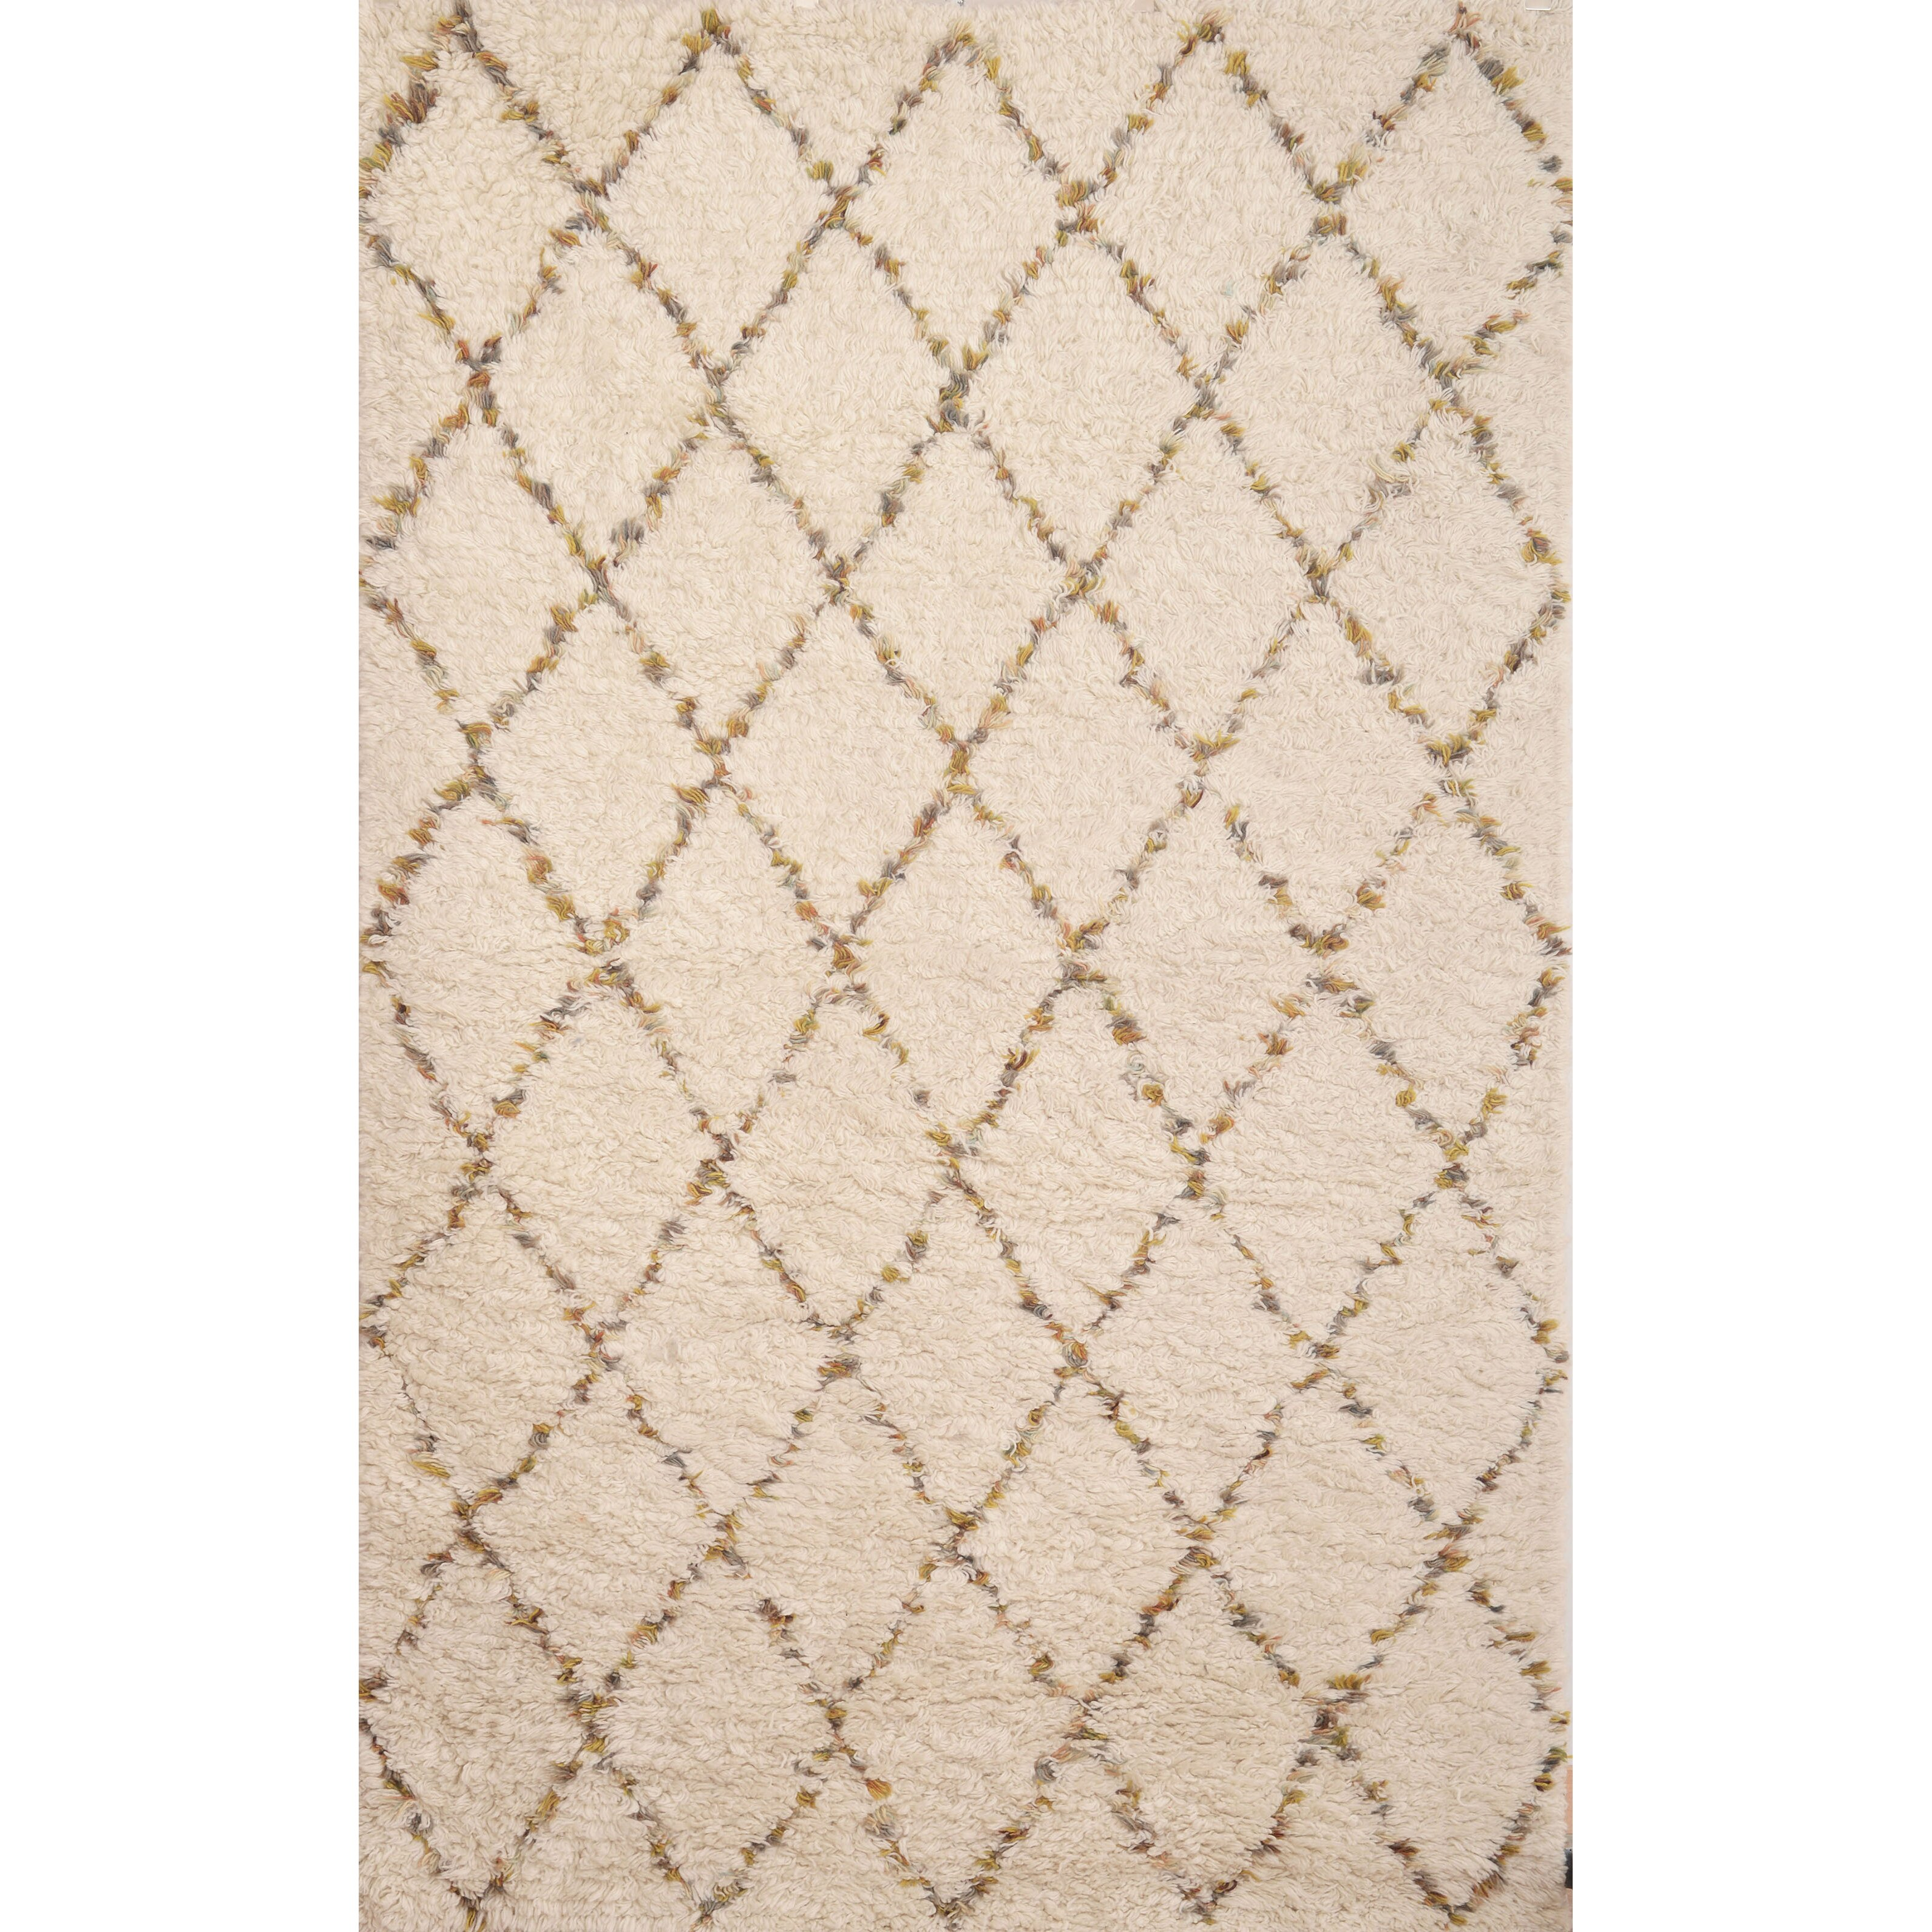 Popular 183 List White And Gold Rug